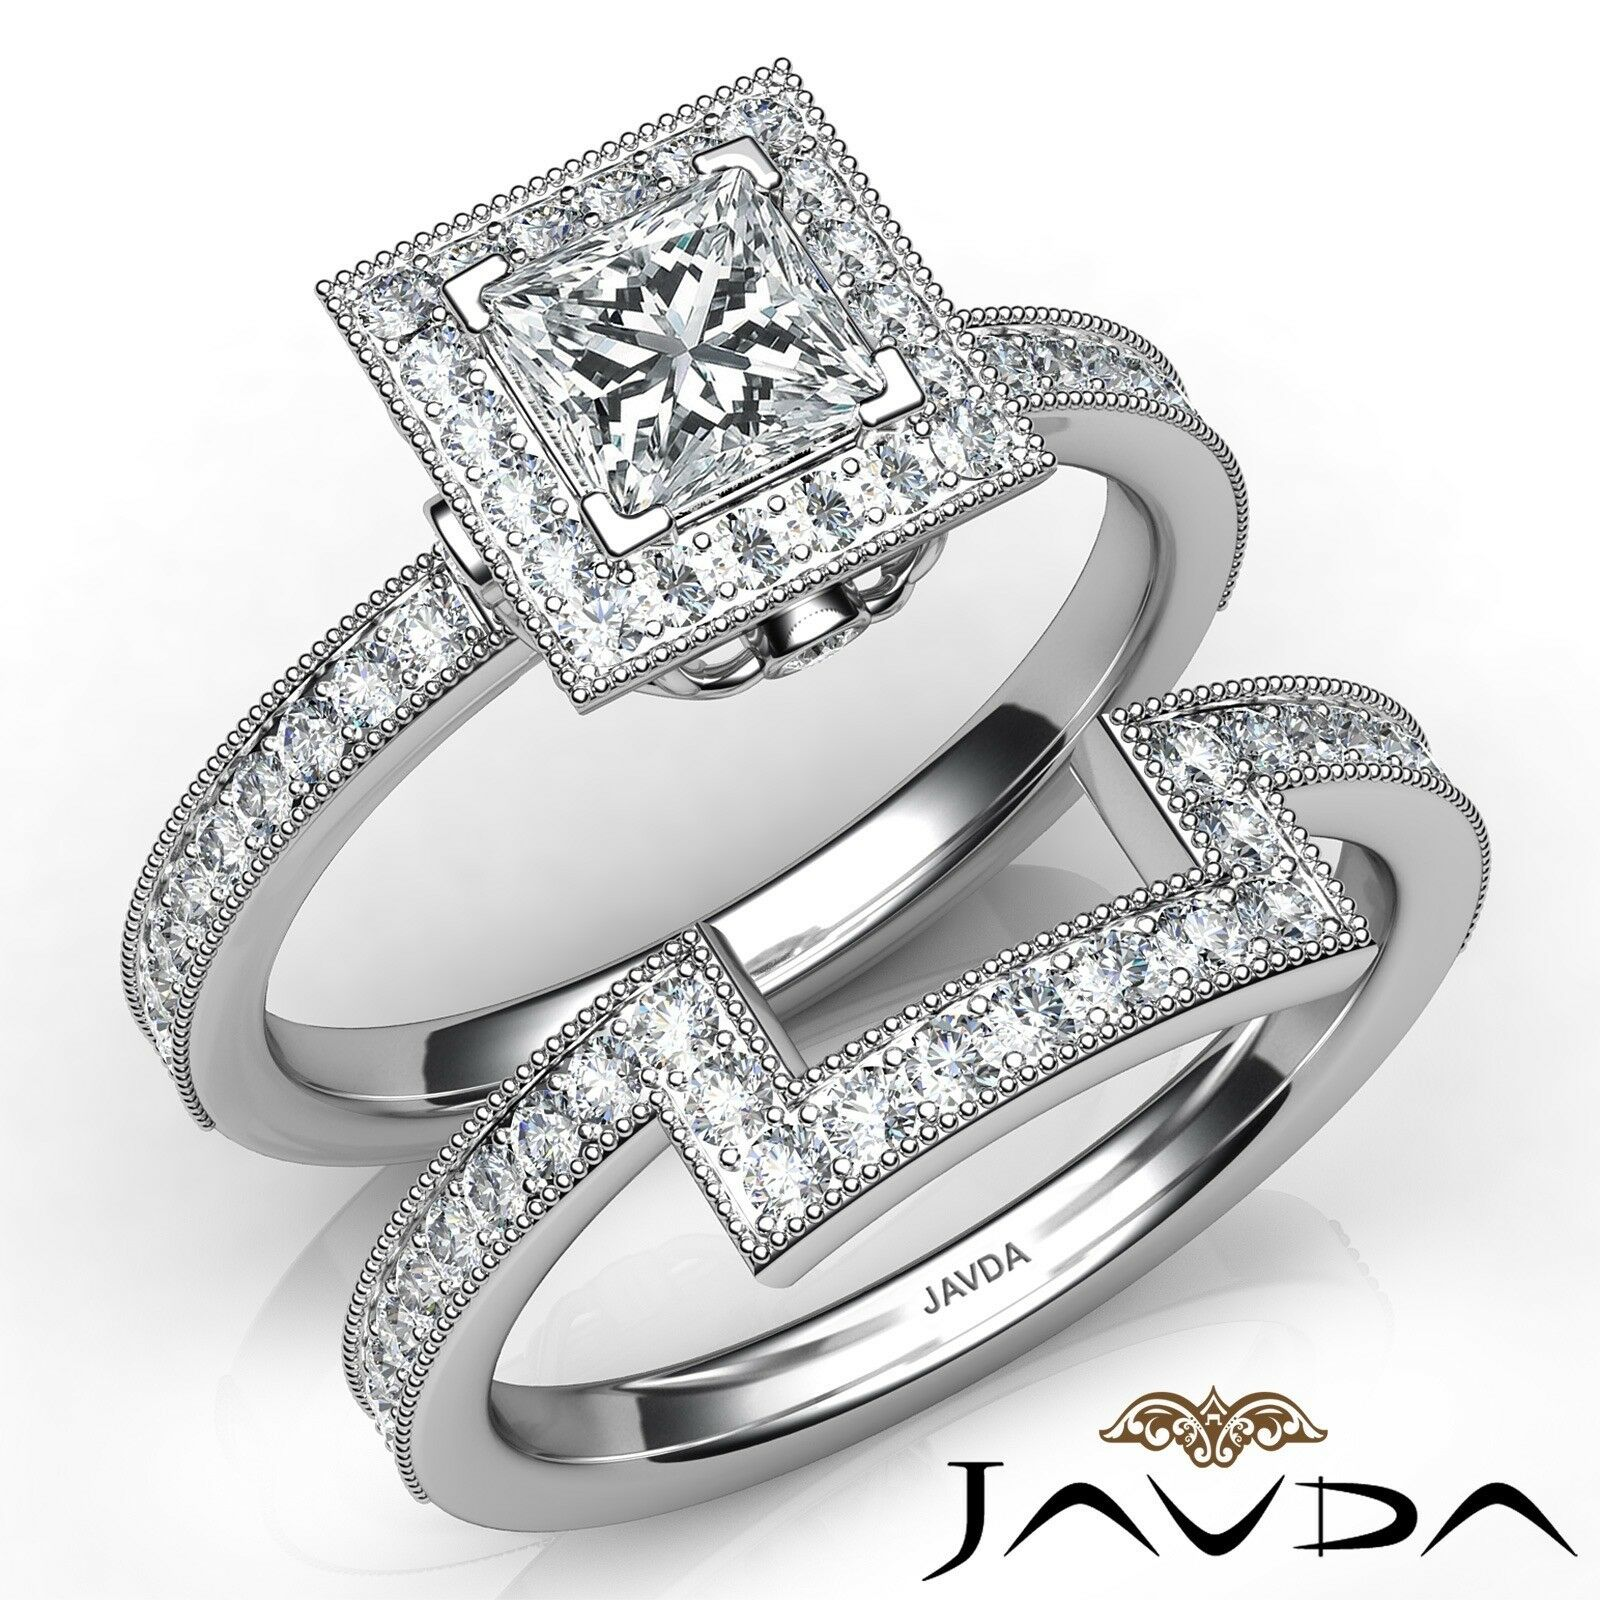 1.9ct Milgrain Edge Bridal Set Princess Diamond Engagement Ring GIA F-VS2 W Gold